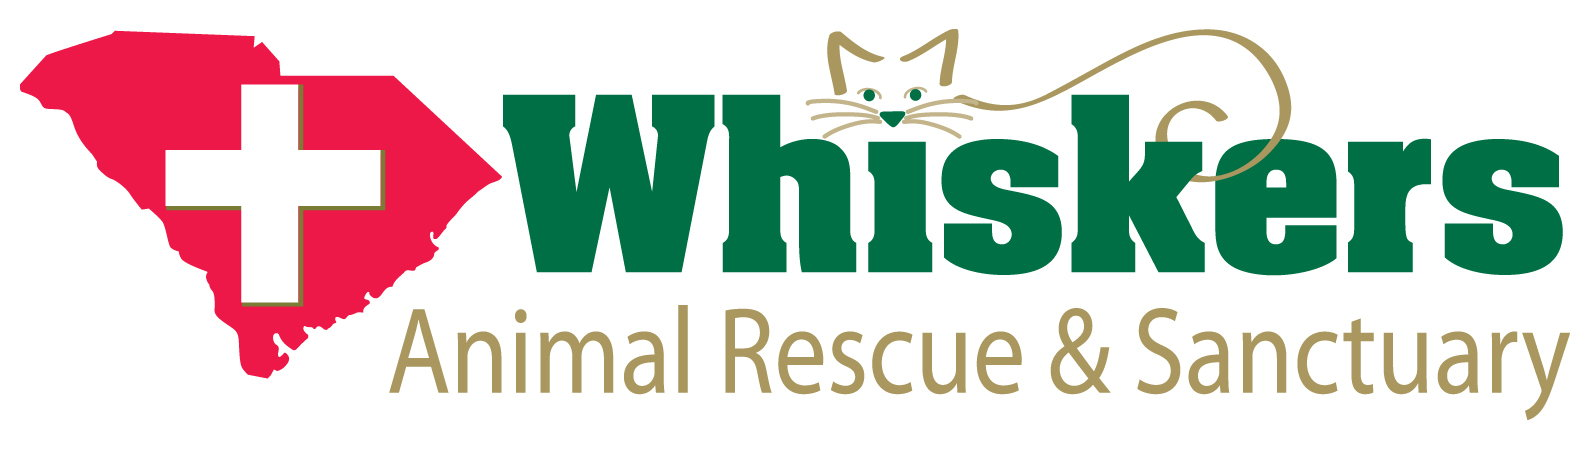 W.A.R.S. Whiskers Animal Rescue & Sanctuary